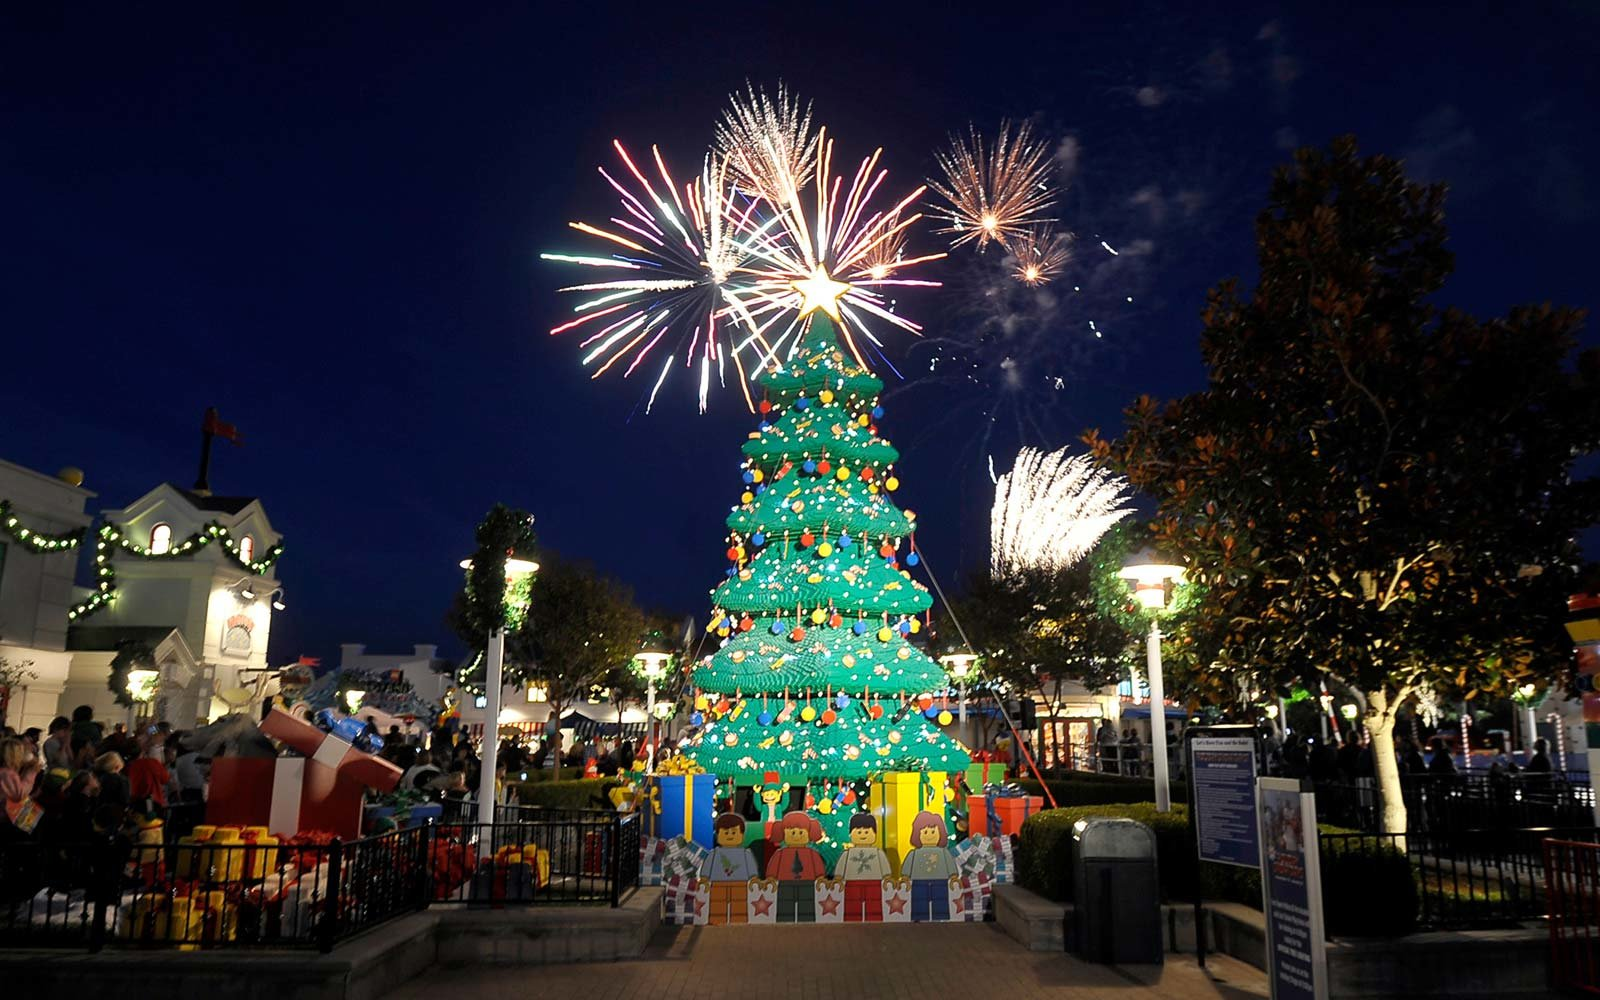 The Legoland Christmas Tree in Carlsbad,  California